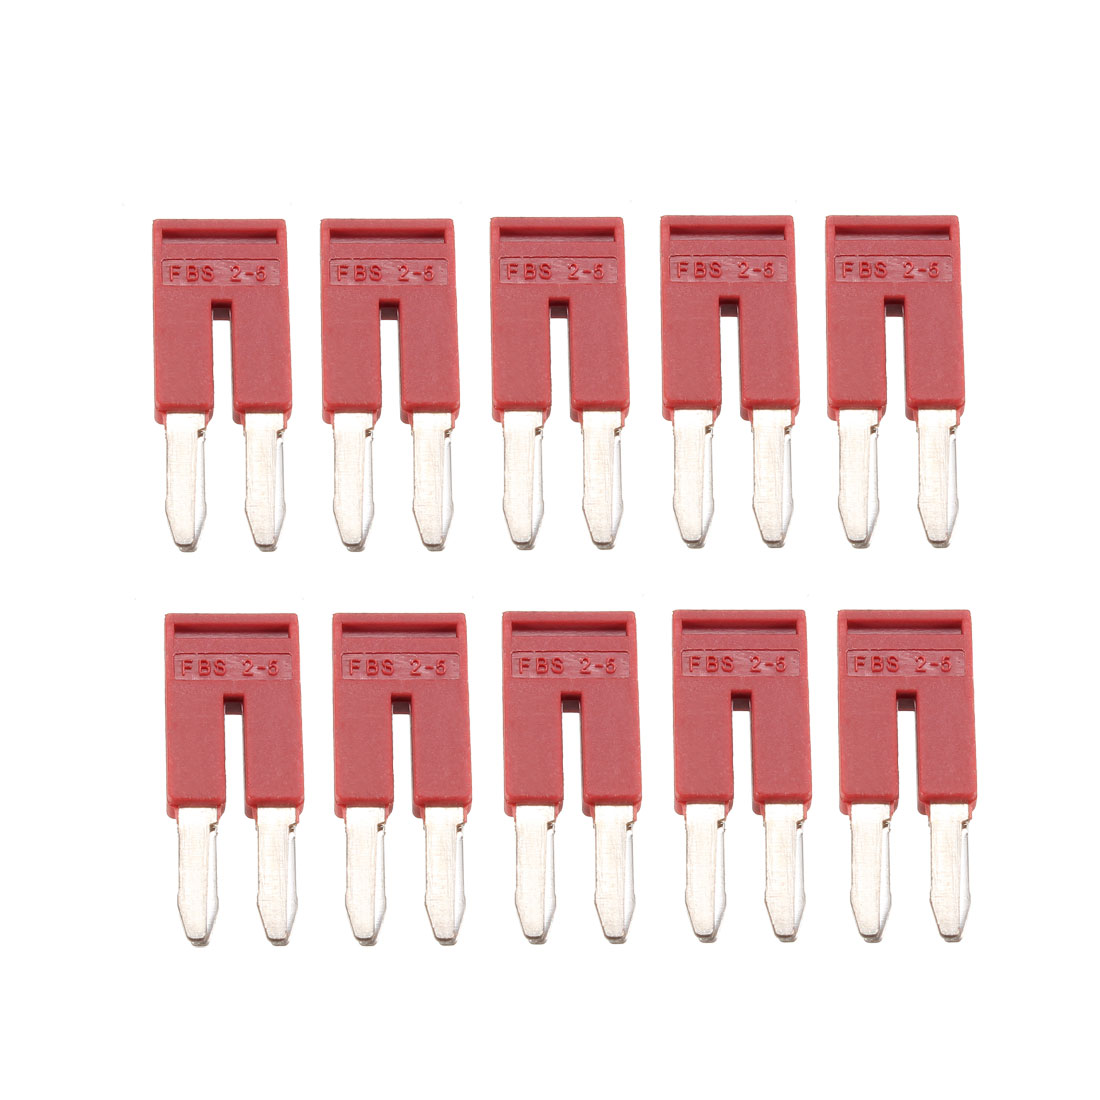 500V 25A 2 Positions Terminal Block Barrier Strip Pre-insulated Red 10 Pcs